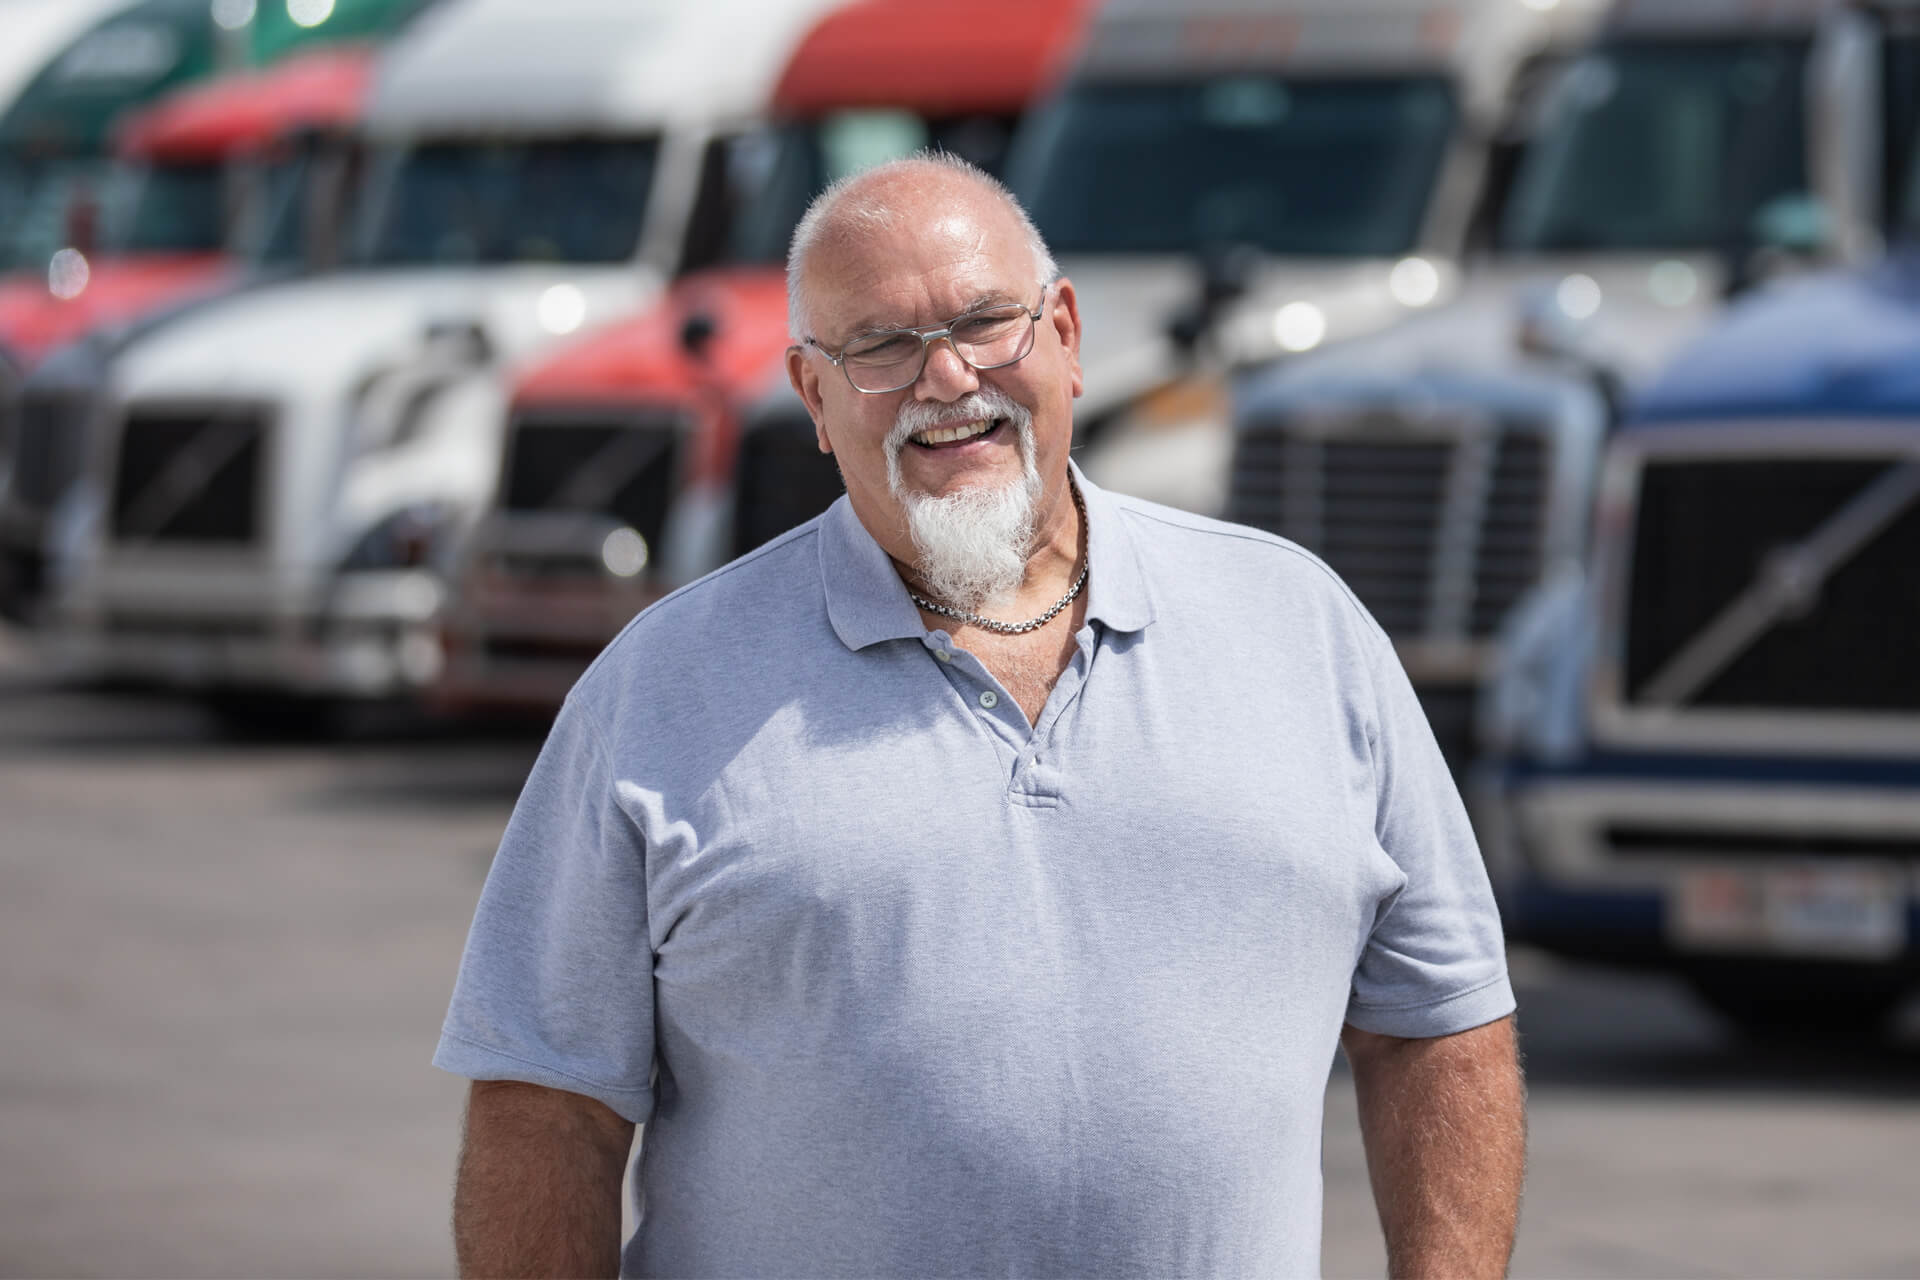 The Weigh-In: Fleet Owner Phil DeKnight on Managing